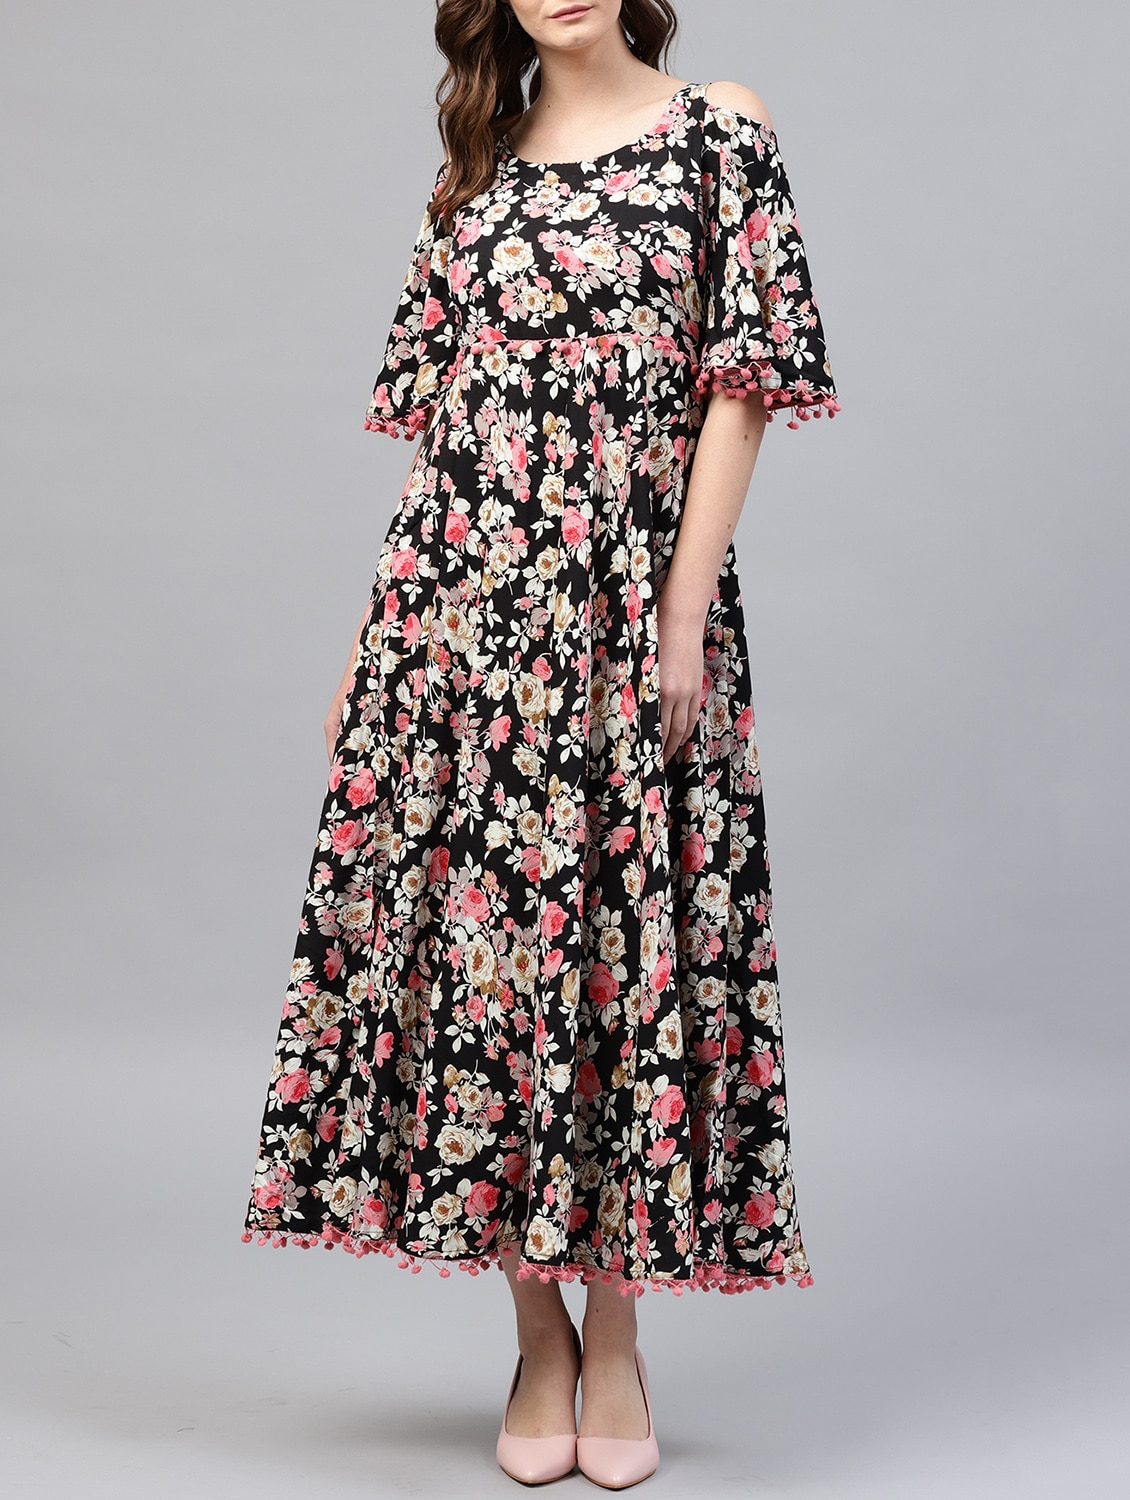 3cbbcf32f9b Buy Cold Shoulder Floral Maxi Dress for Women from Gerua for ₹899 at 40% off